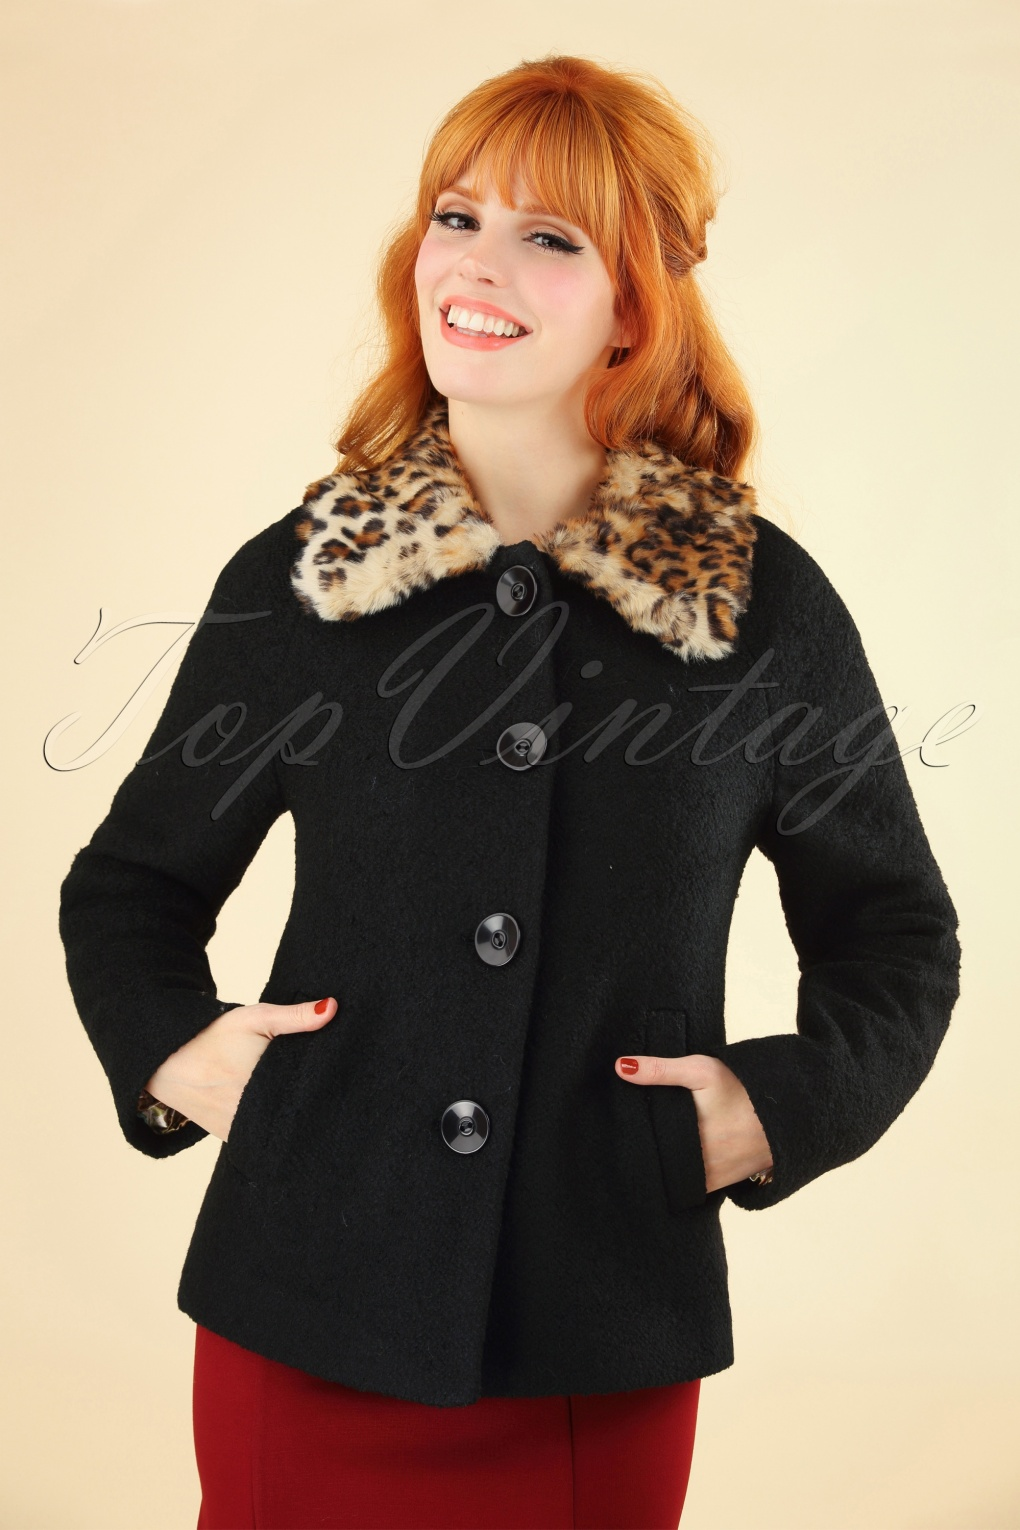 1950s Jackets, Coats, Bolero | Swing, Pin Up, Rockabilly 60s Loretta Razzmataz Coat in Black £66.93 AT vintagedancer.com